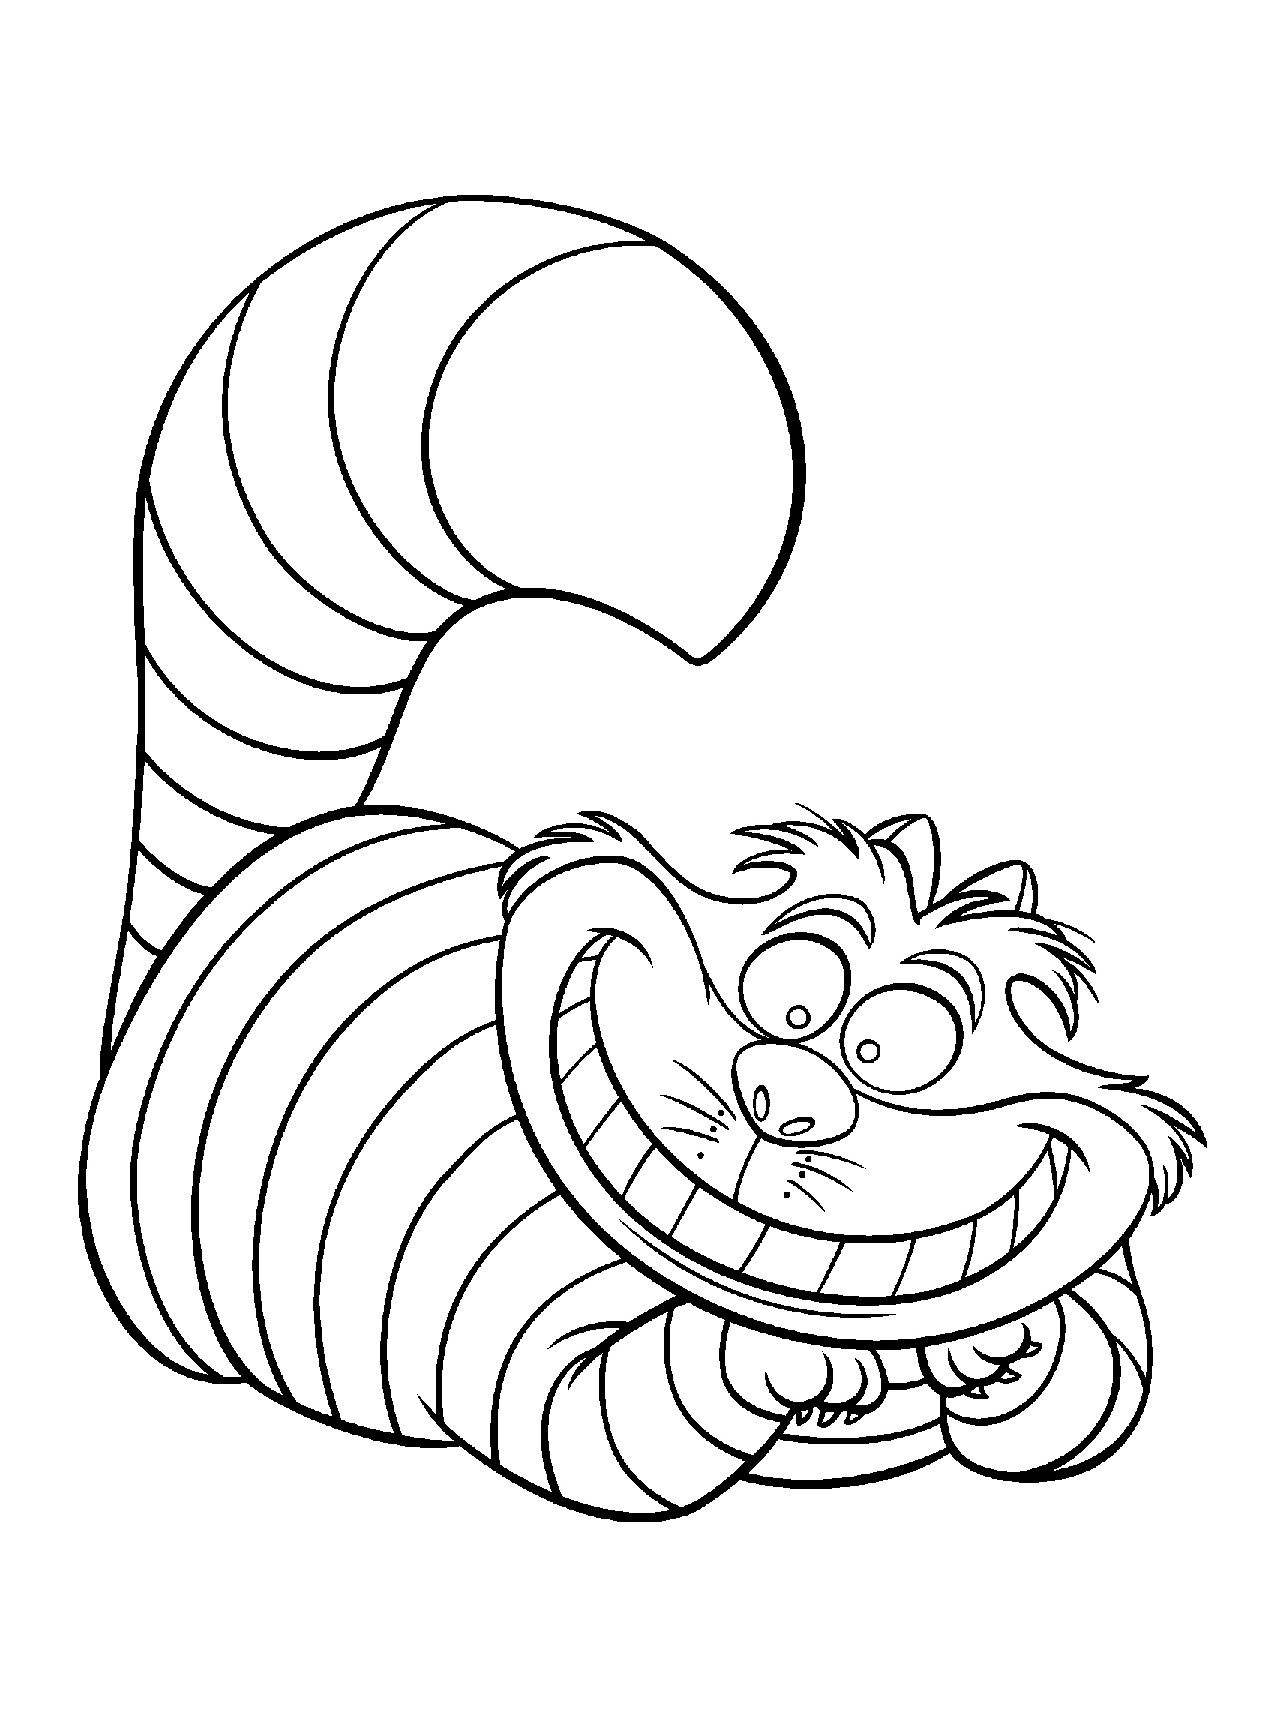 Skills Cheshire Cat Coloring Pages Coloring Panda Online Cheshire